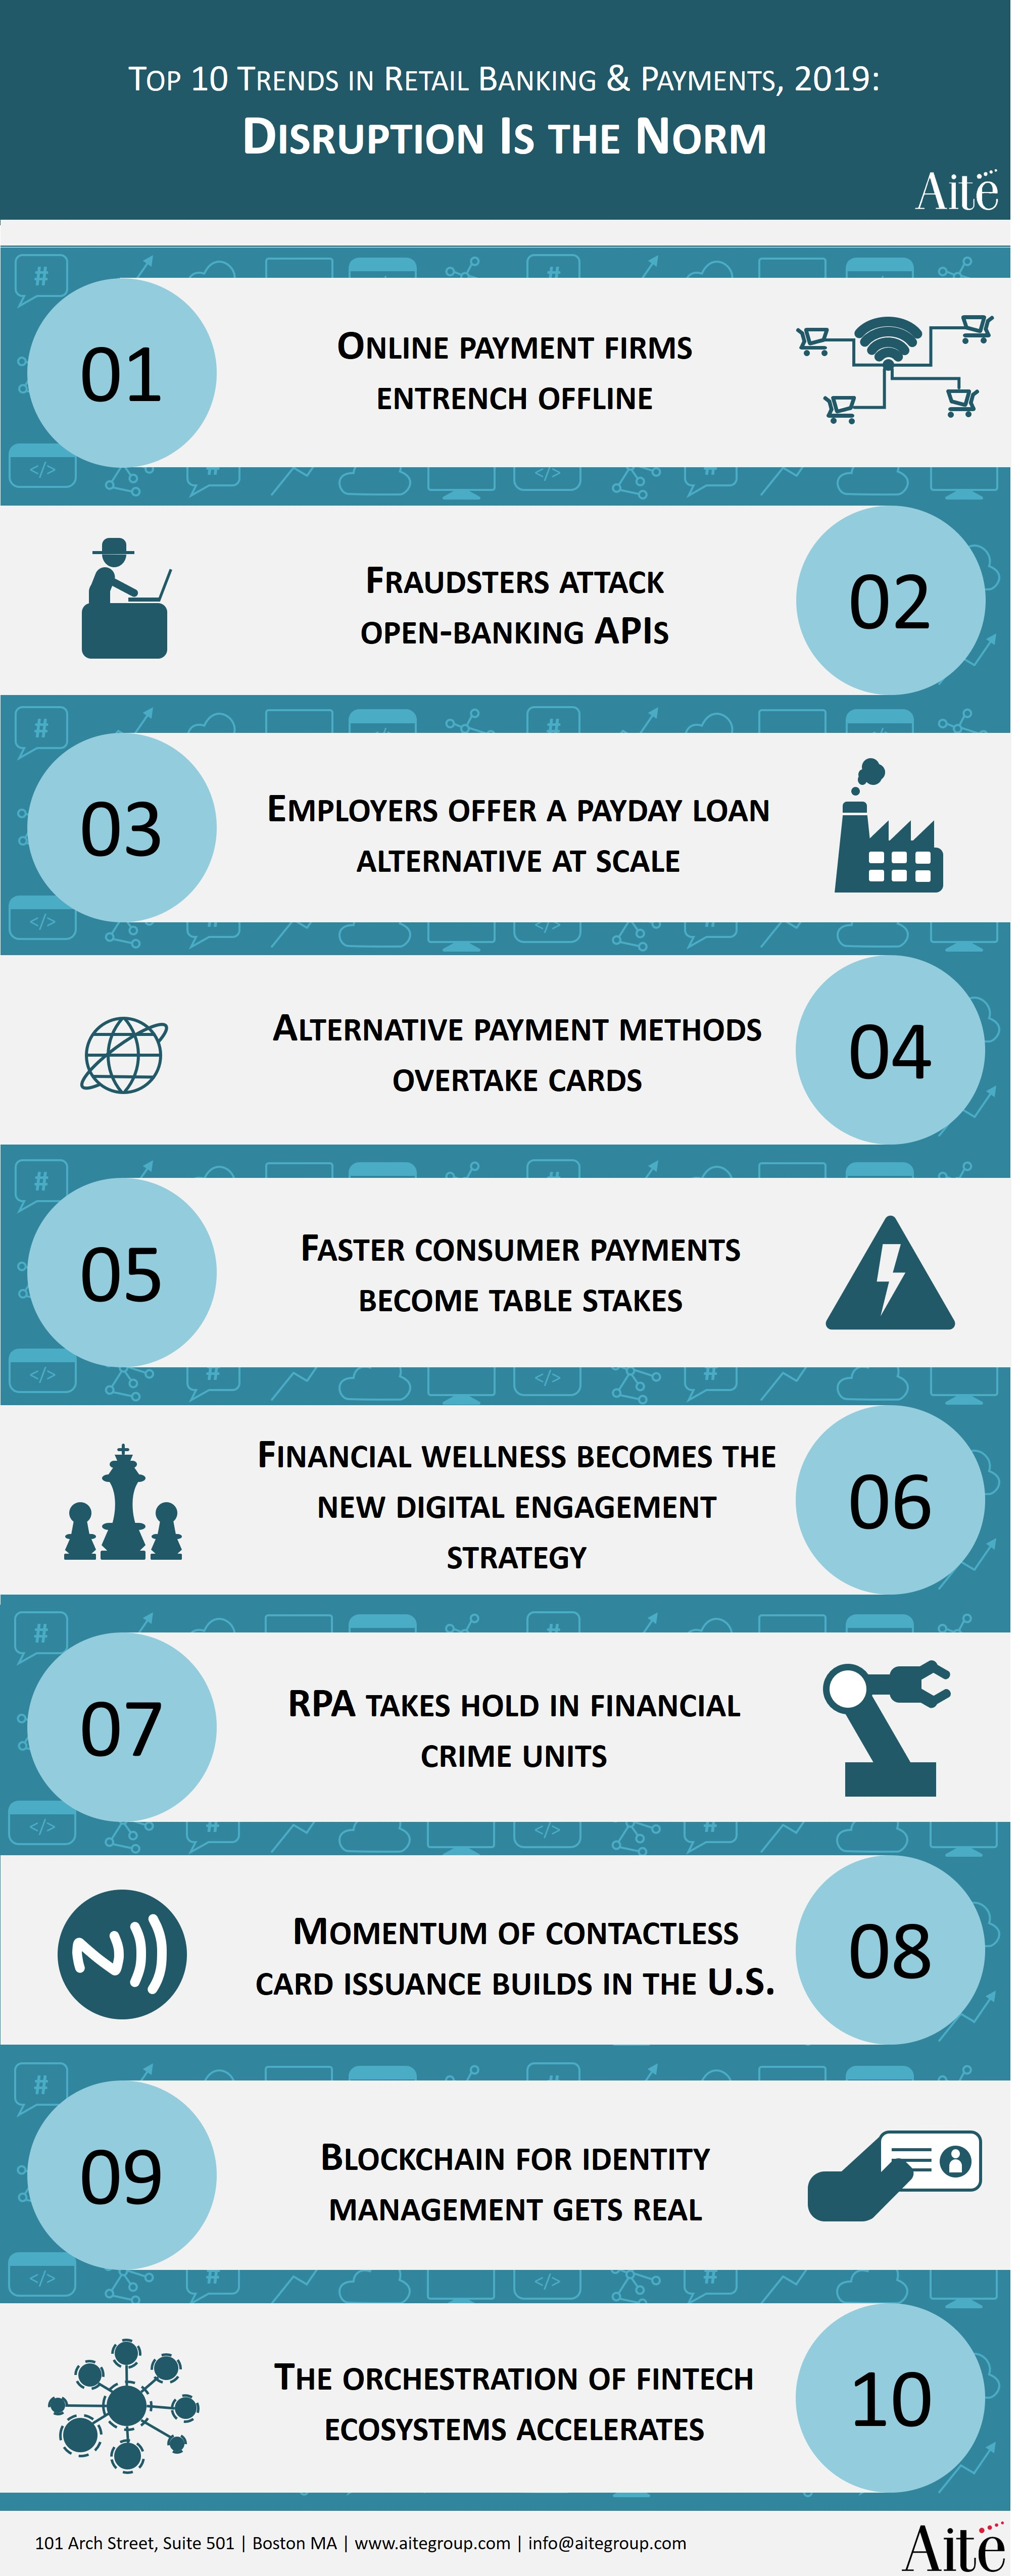 Top 10 Trends in Retail Banking & Payments, 2019: Disruption